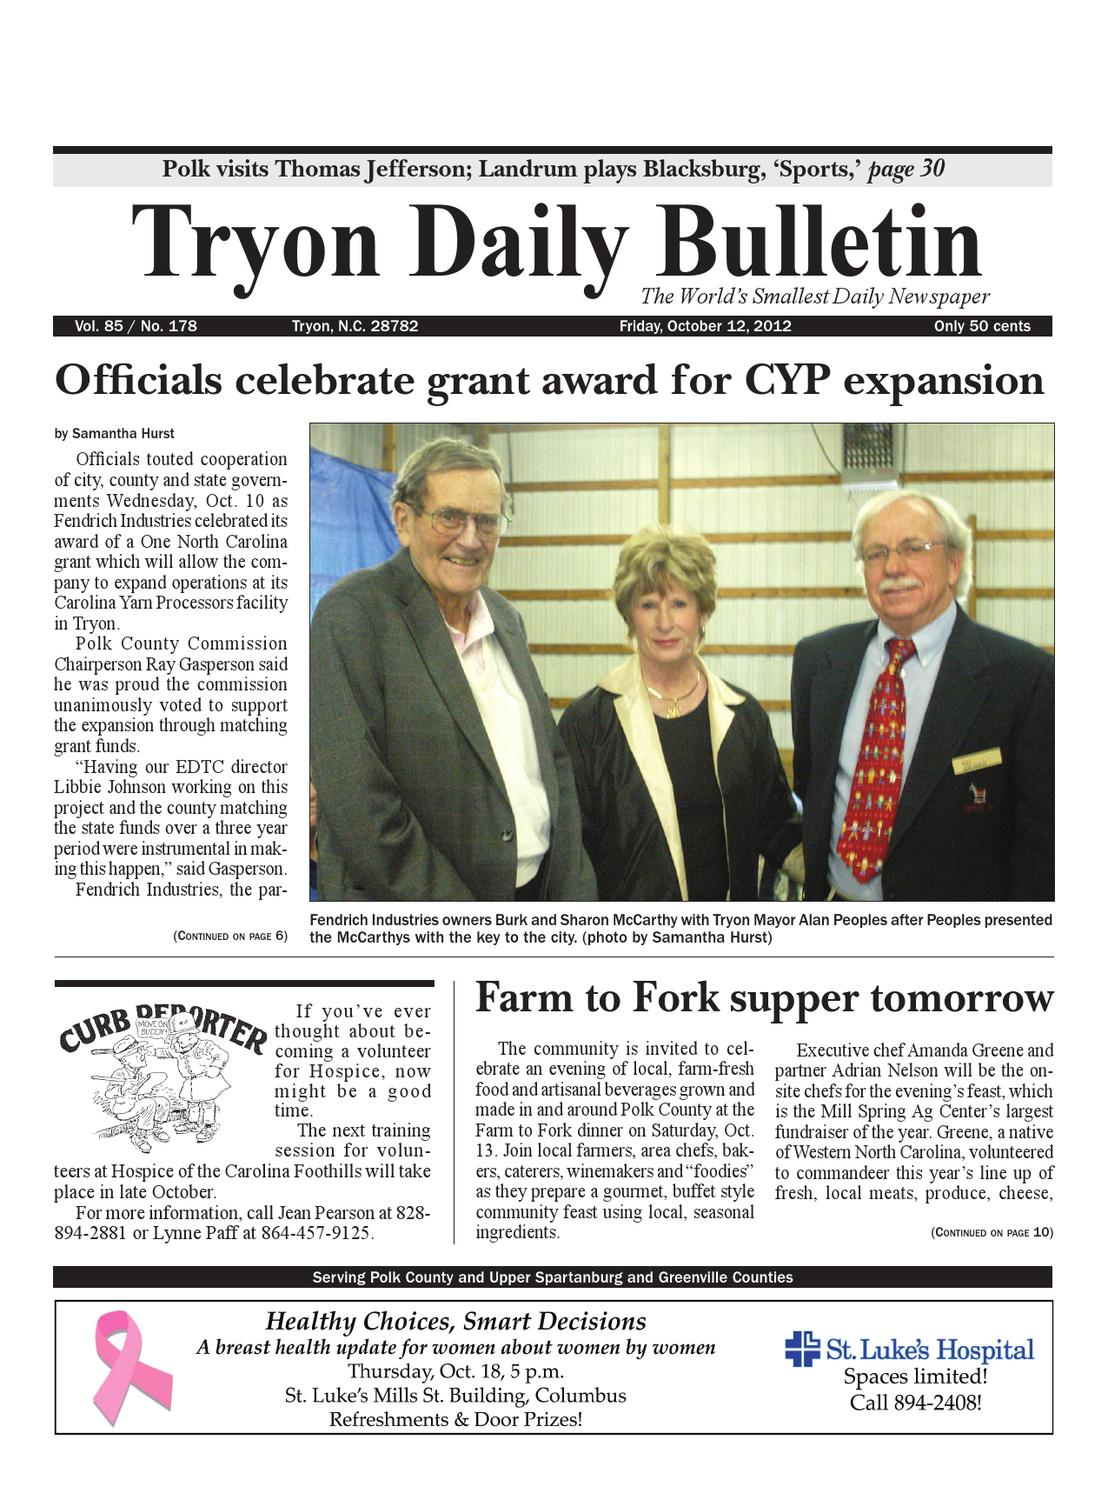 10-12-12 Daily Bulletin by Tryon Daily Bulletin - issuu